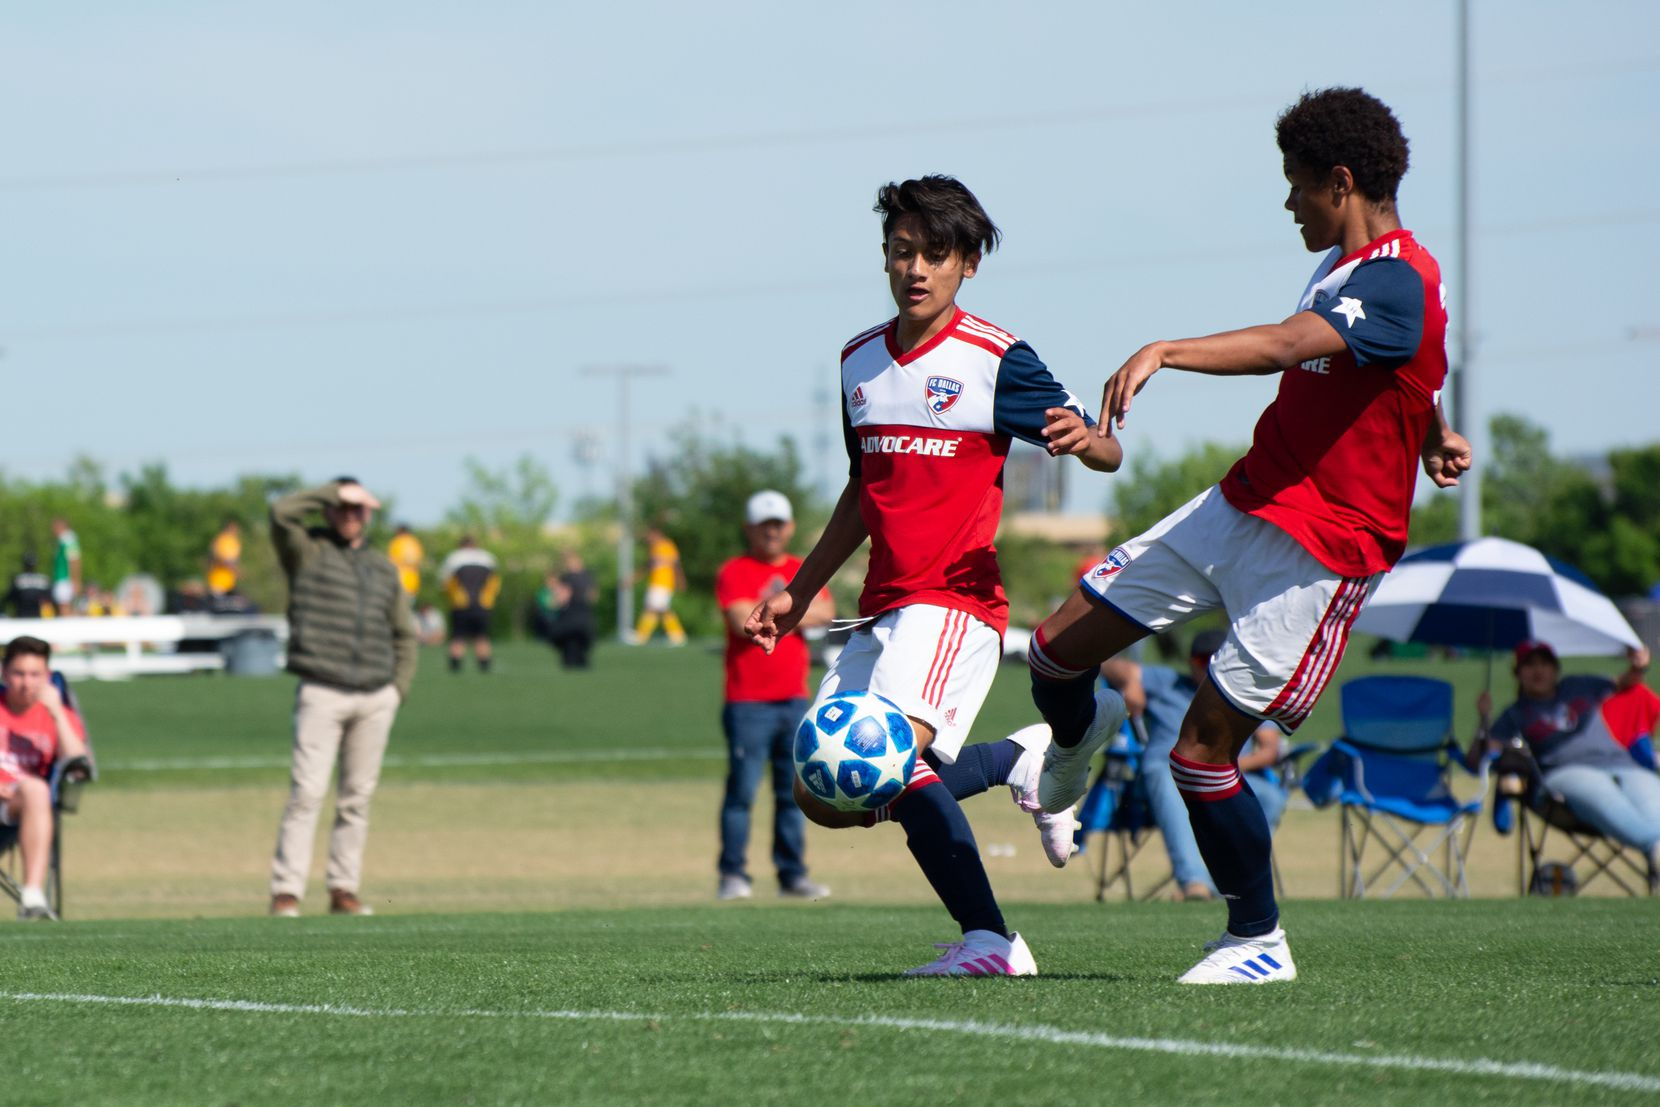 Jordan James of FC Dallas shoots for one of his three goals against Ikapa United in the 2019 Dallas Cup Super 14s.